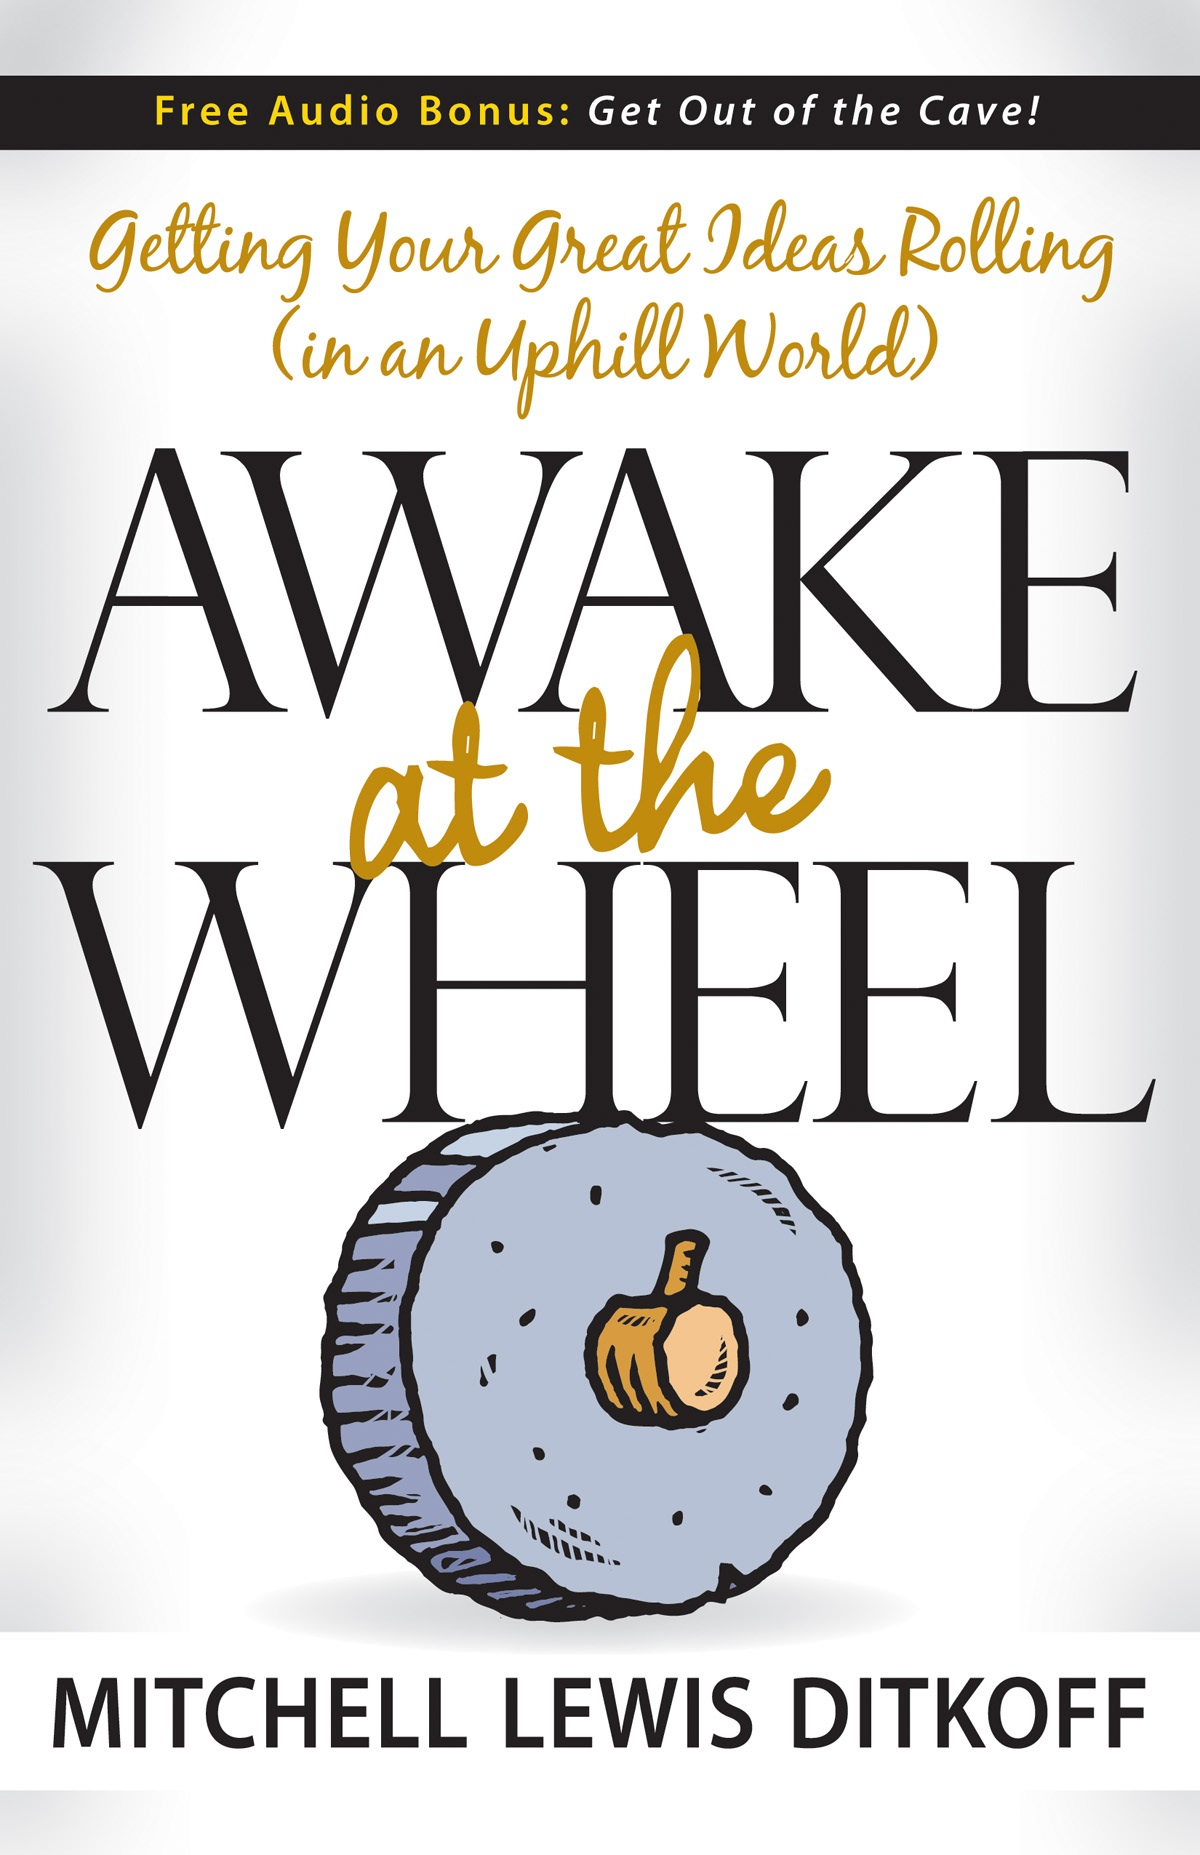 Awake at the Wheel final cover.jpg